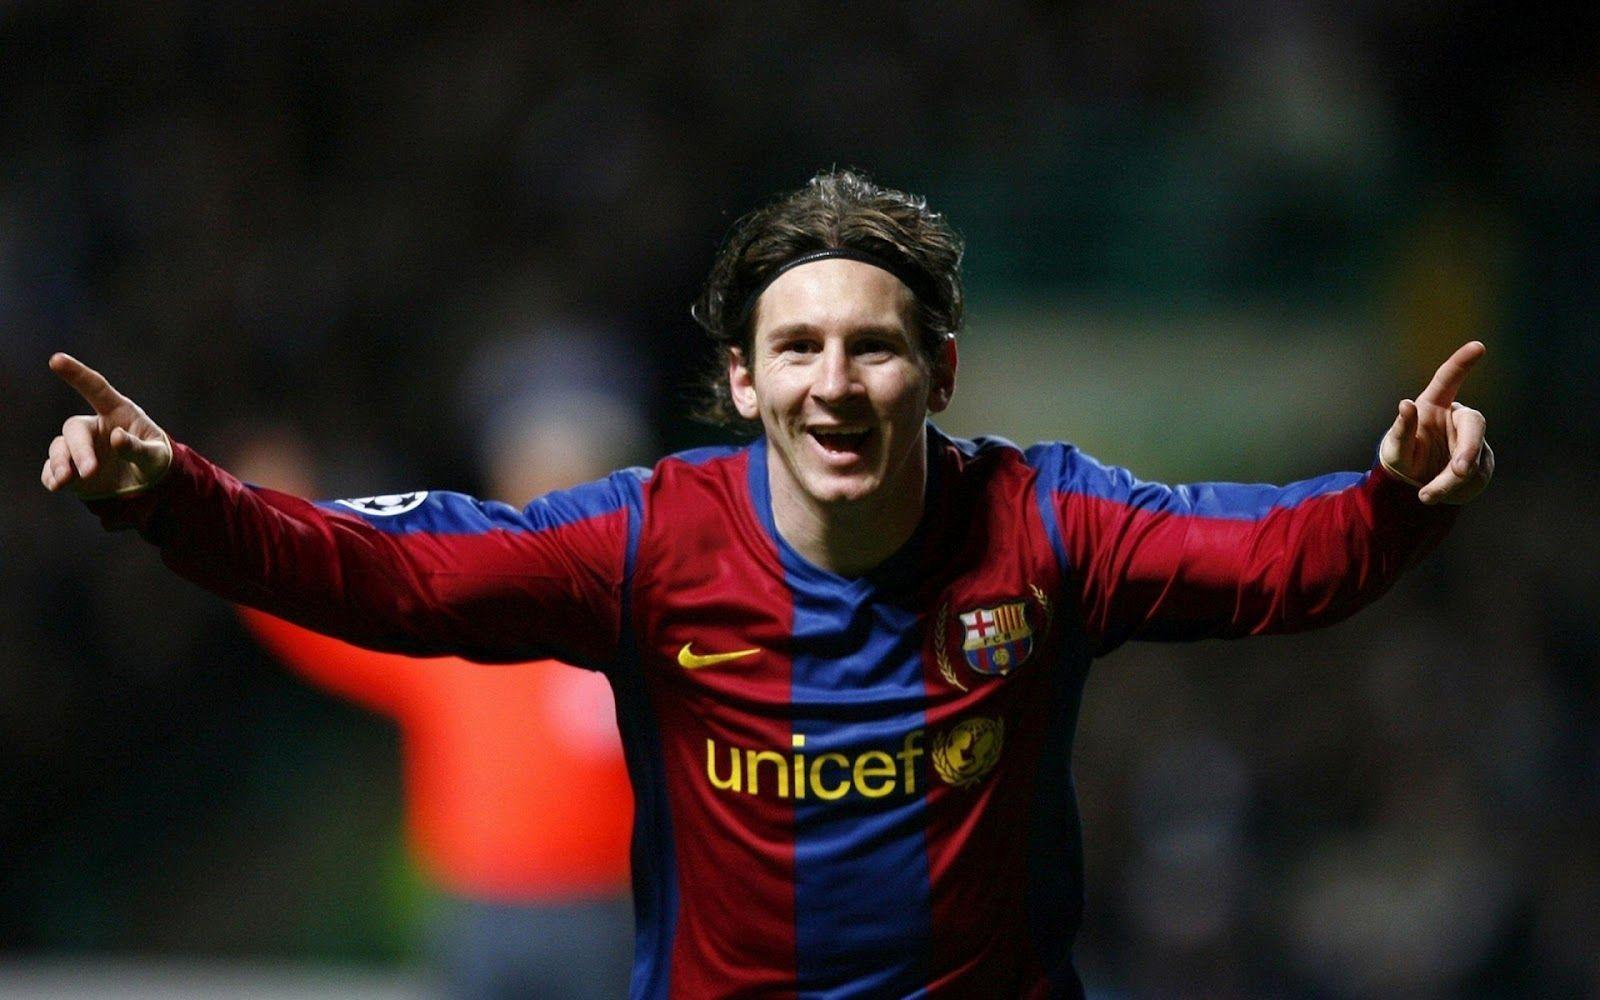 Lionel Messi HD Wallpapers - Celebrities HD Wallpapers